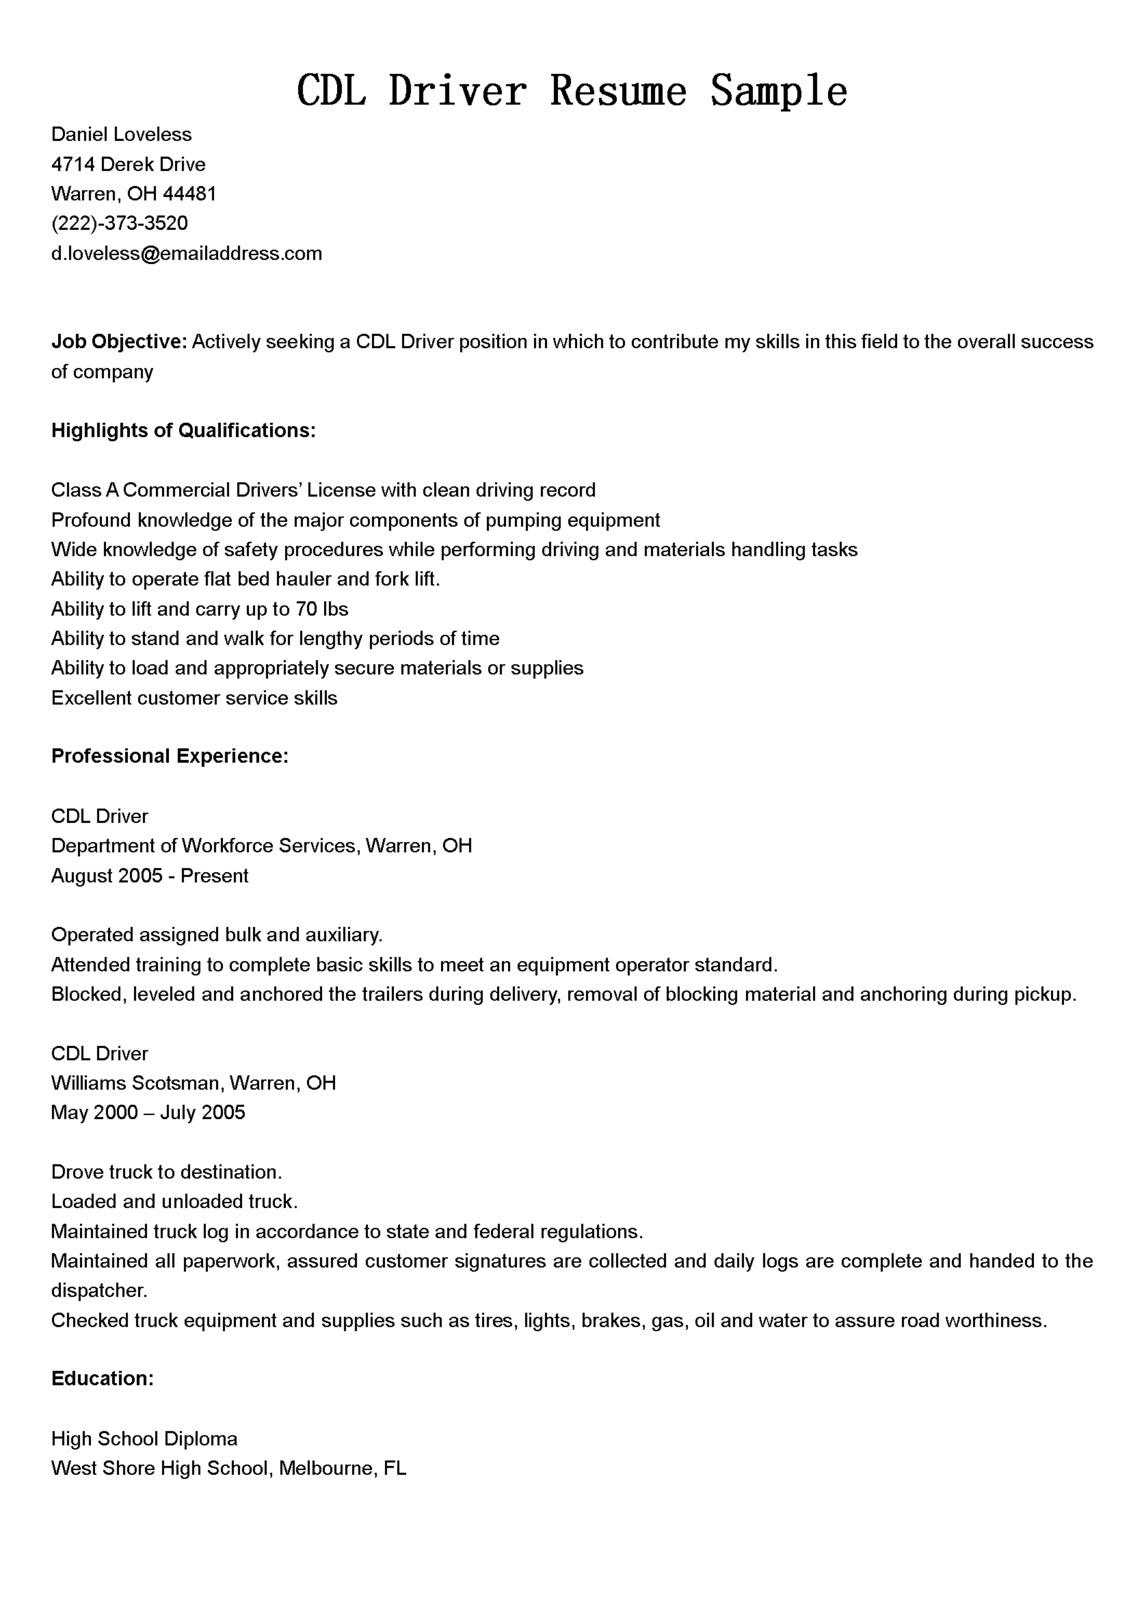 Sample Bus Driver Resume | Resume CV Cover Letter